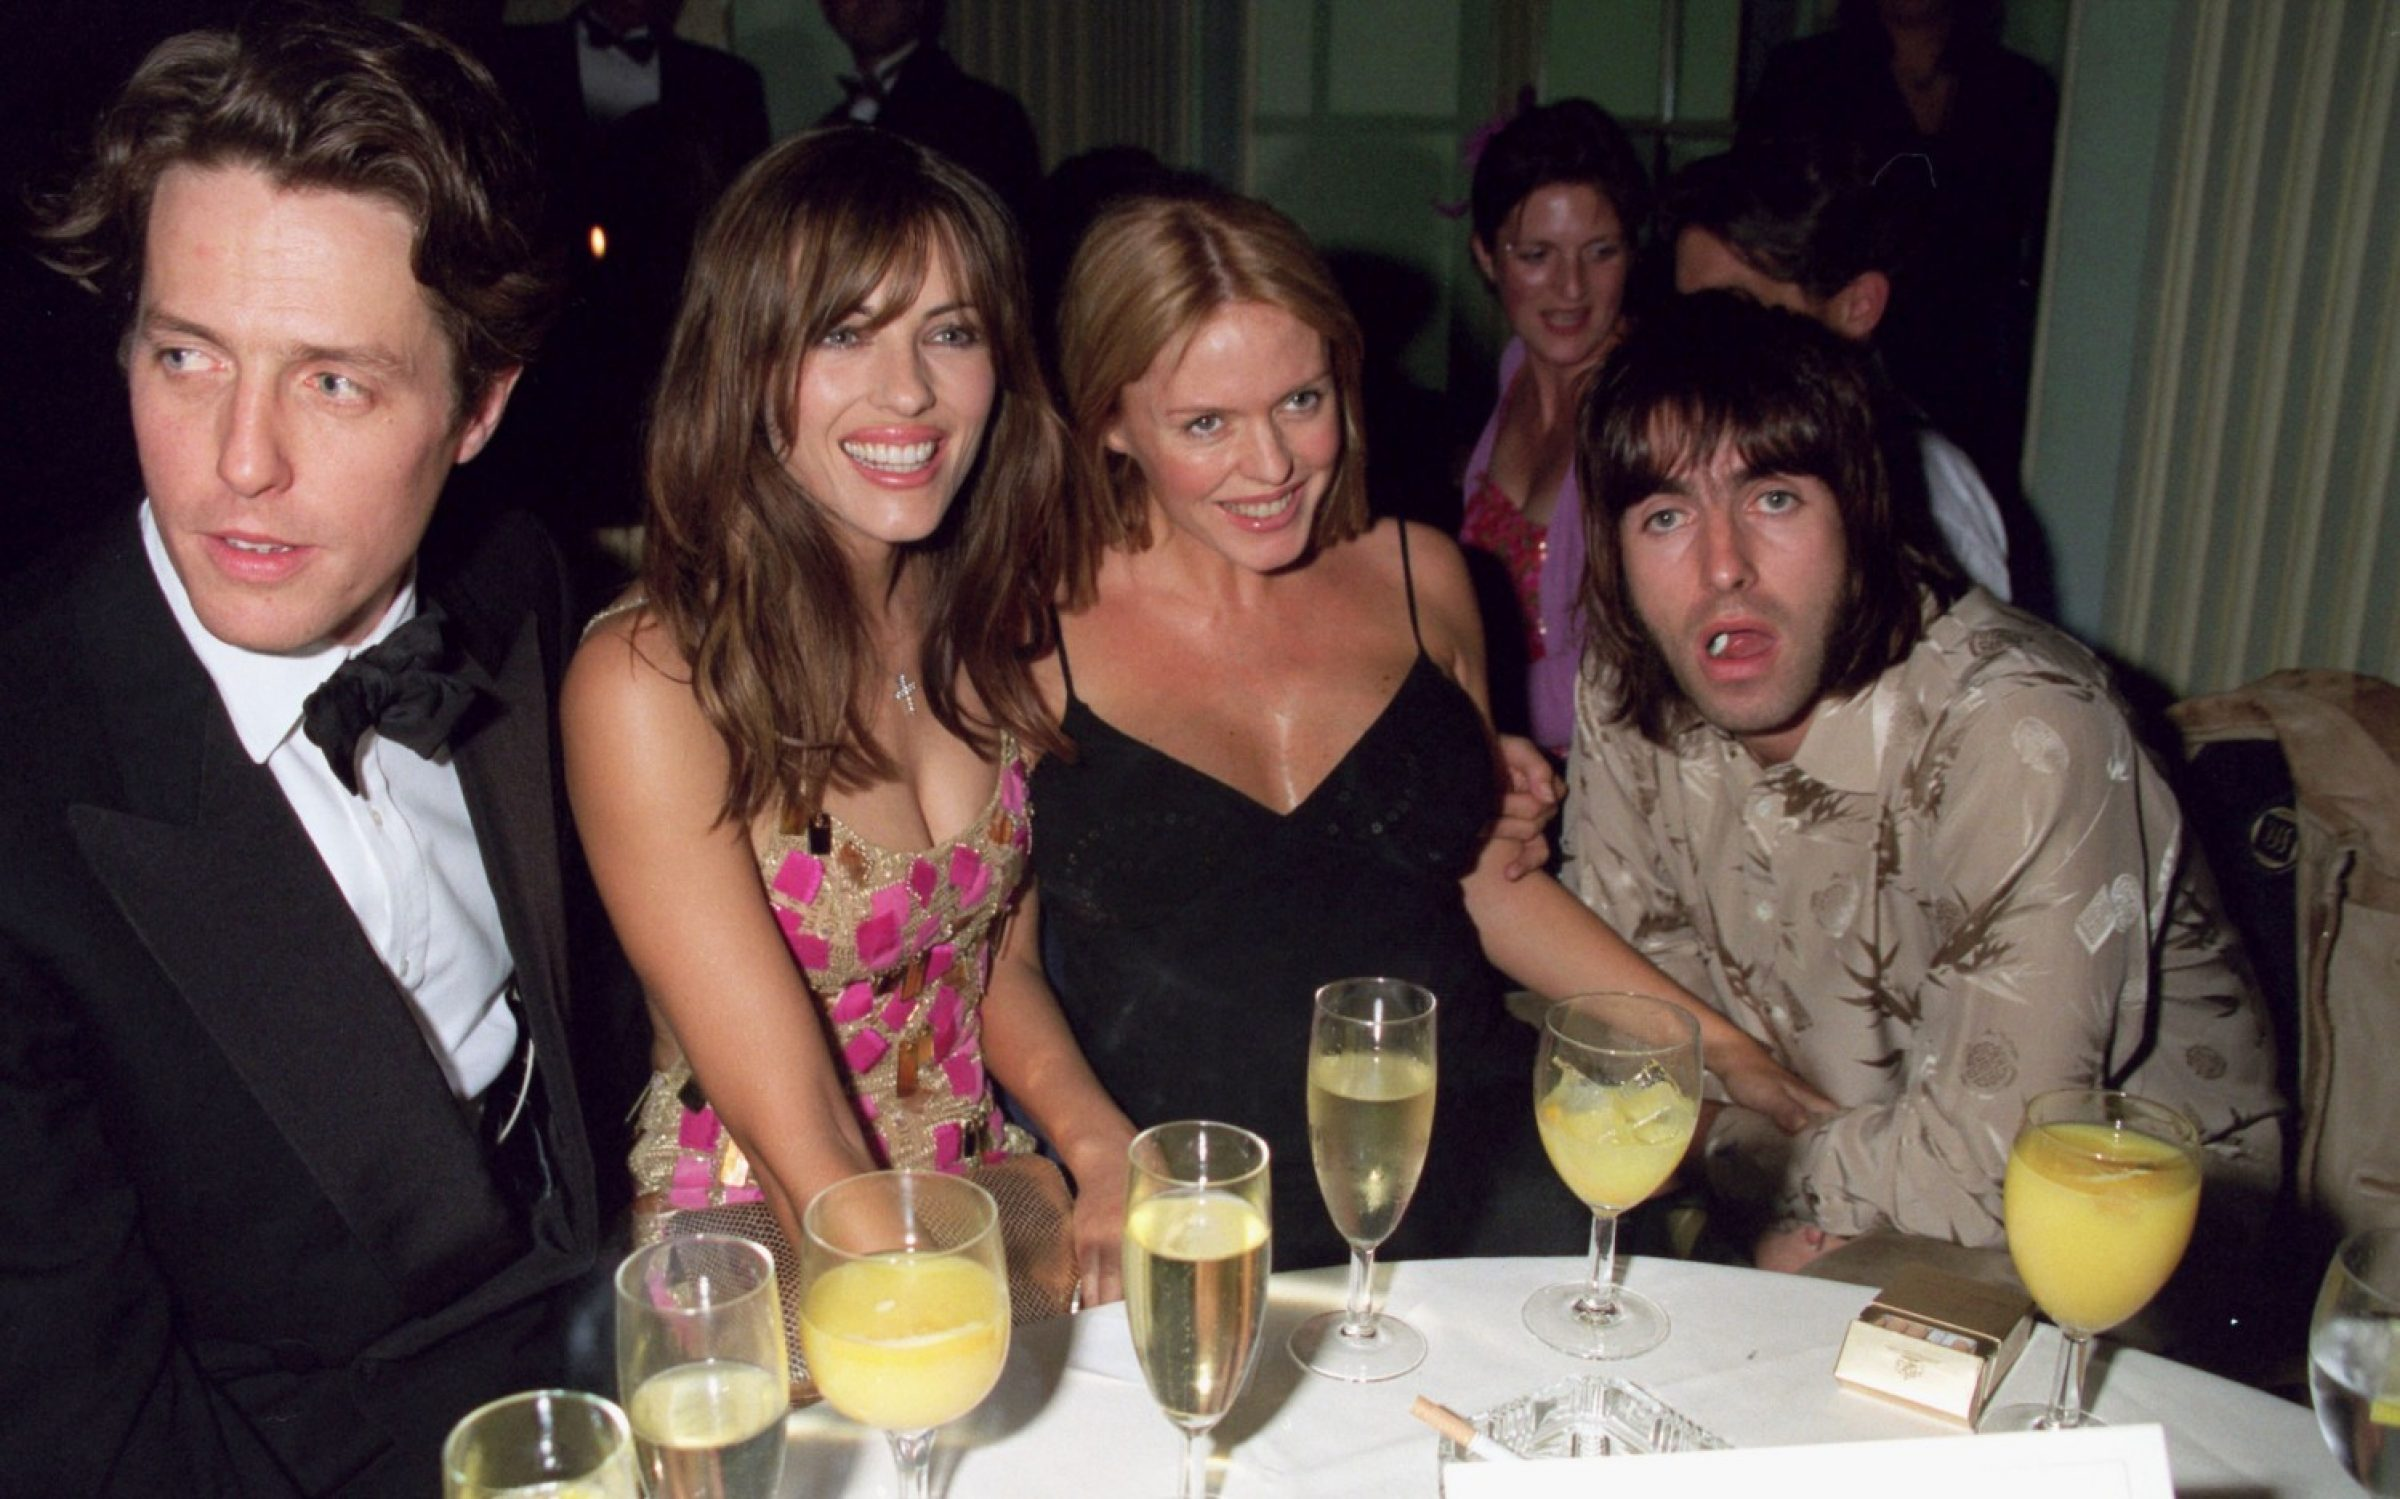 Oasis lead singer Liam Gallagher (right) at the Mickey Blue Eyes premiere afterparty, 1999. Credit: Dave Bennett / Hulton Archive / Getty Images.